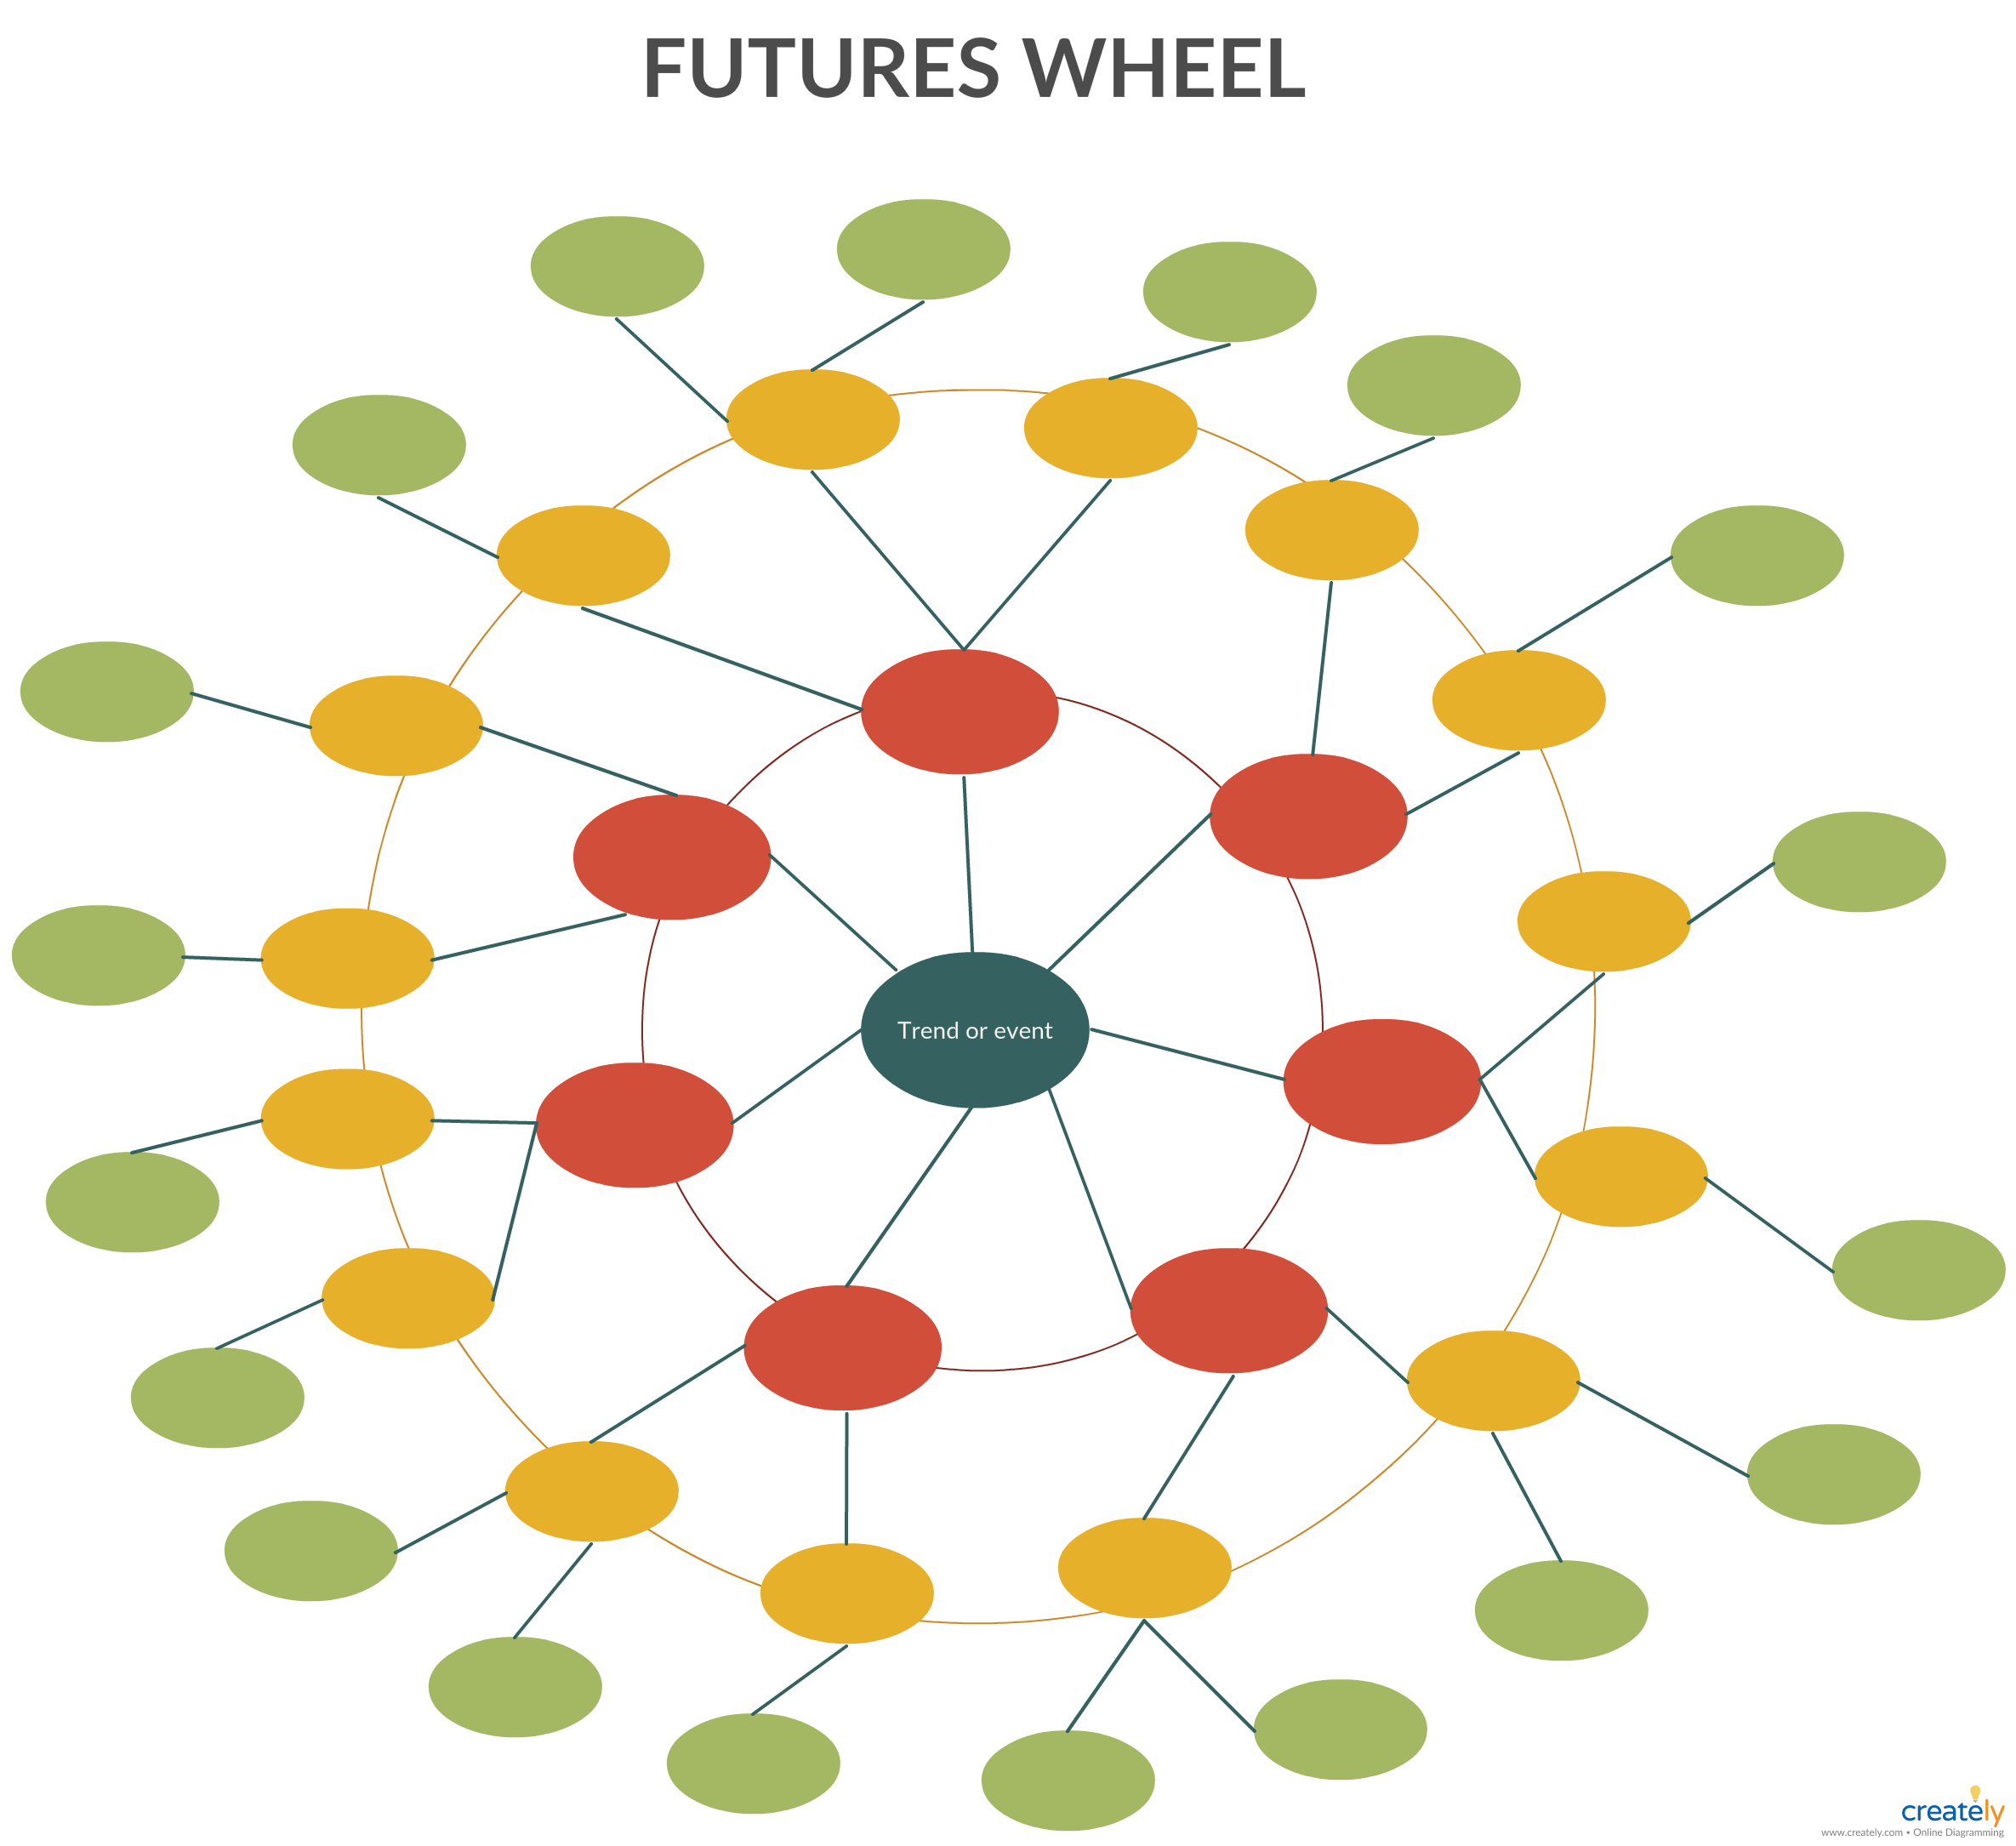 Futures Wheel The Future Wheel Is A Method For Graphical